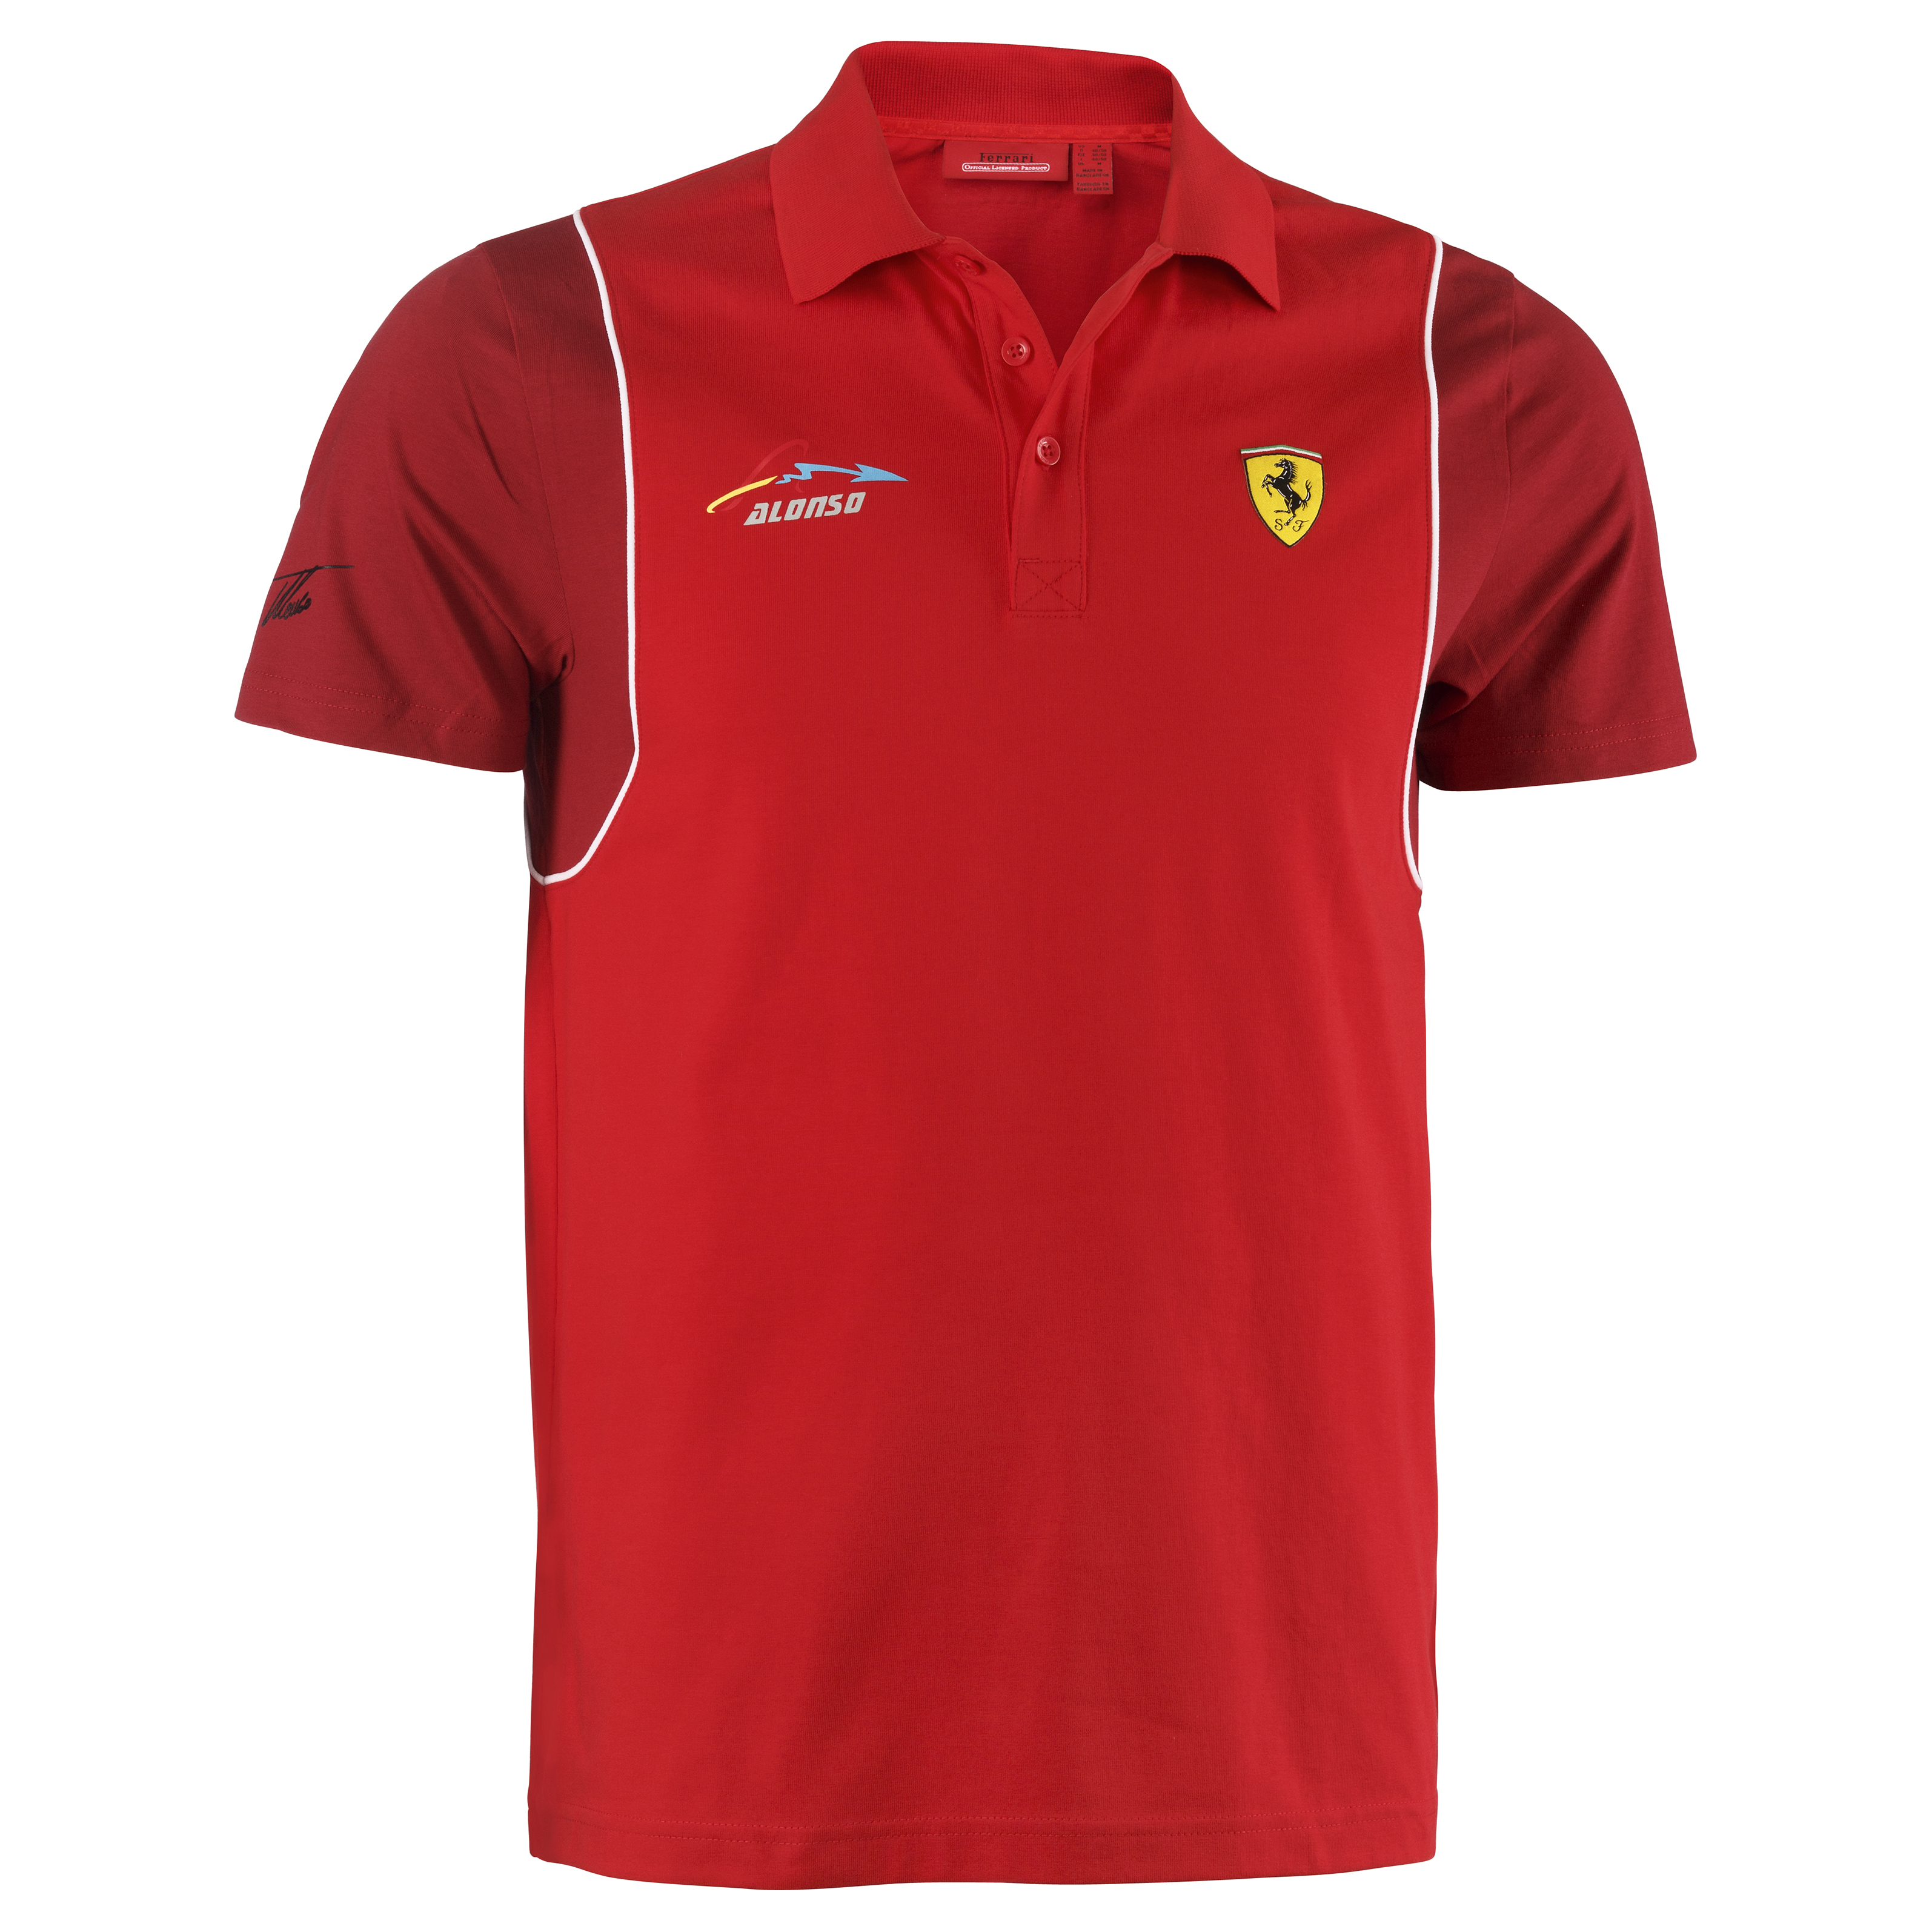 Scuderia Ferrari Alonso Polo - Red